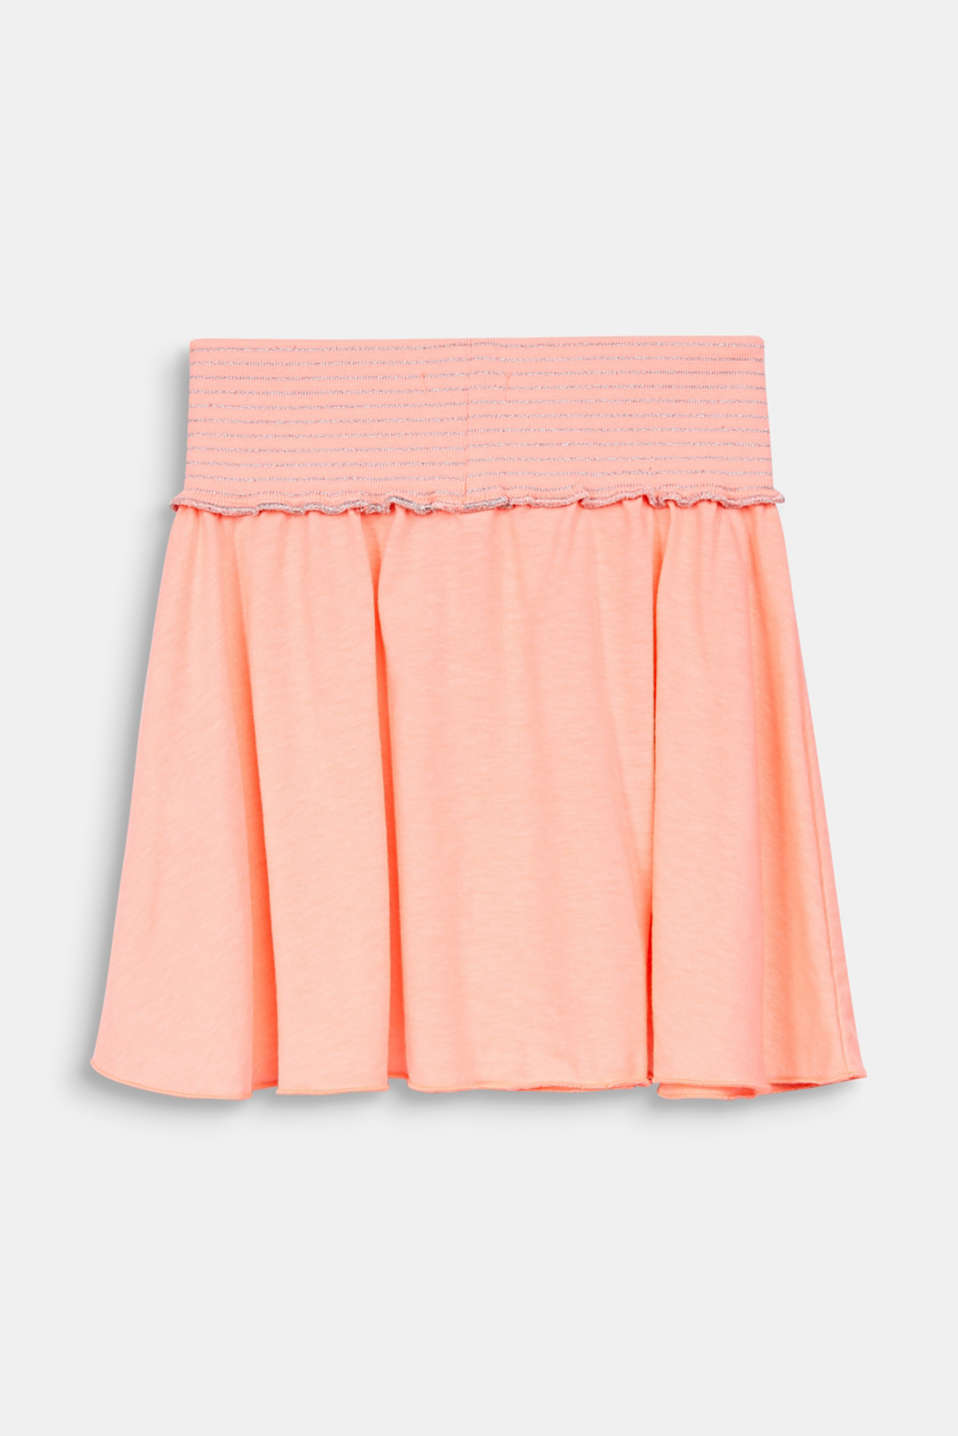 NEON jersey skirt with a wide elasticated waistband, NEON CORAL, detail image number 1